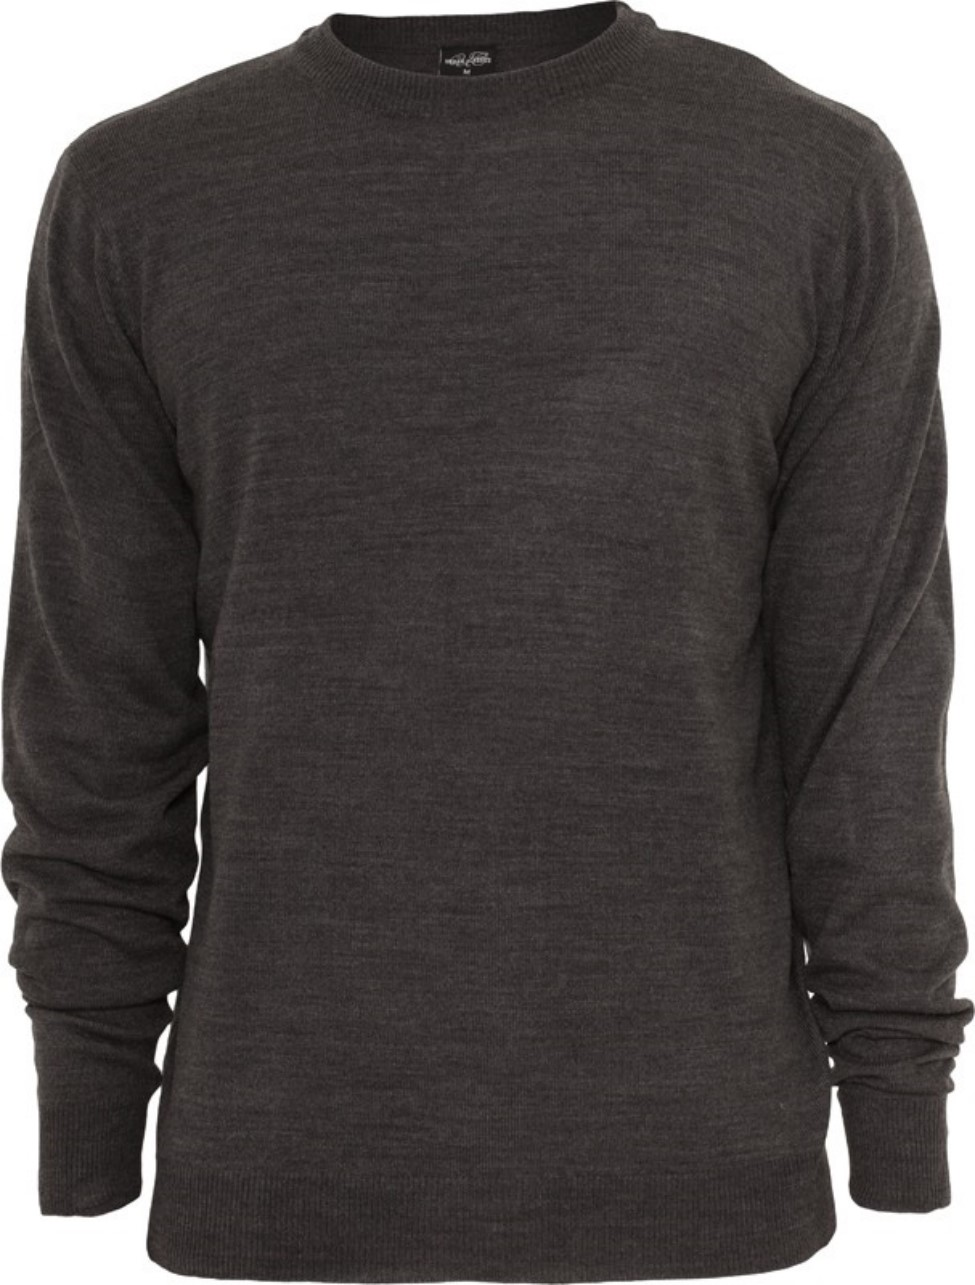 Urban Classics Herren Sweatshirt Knitted Crewneck - Regular Fit